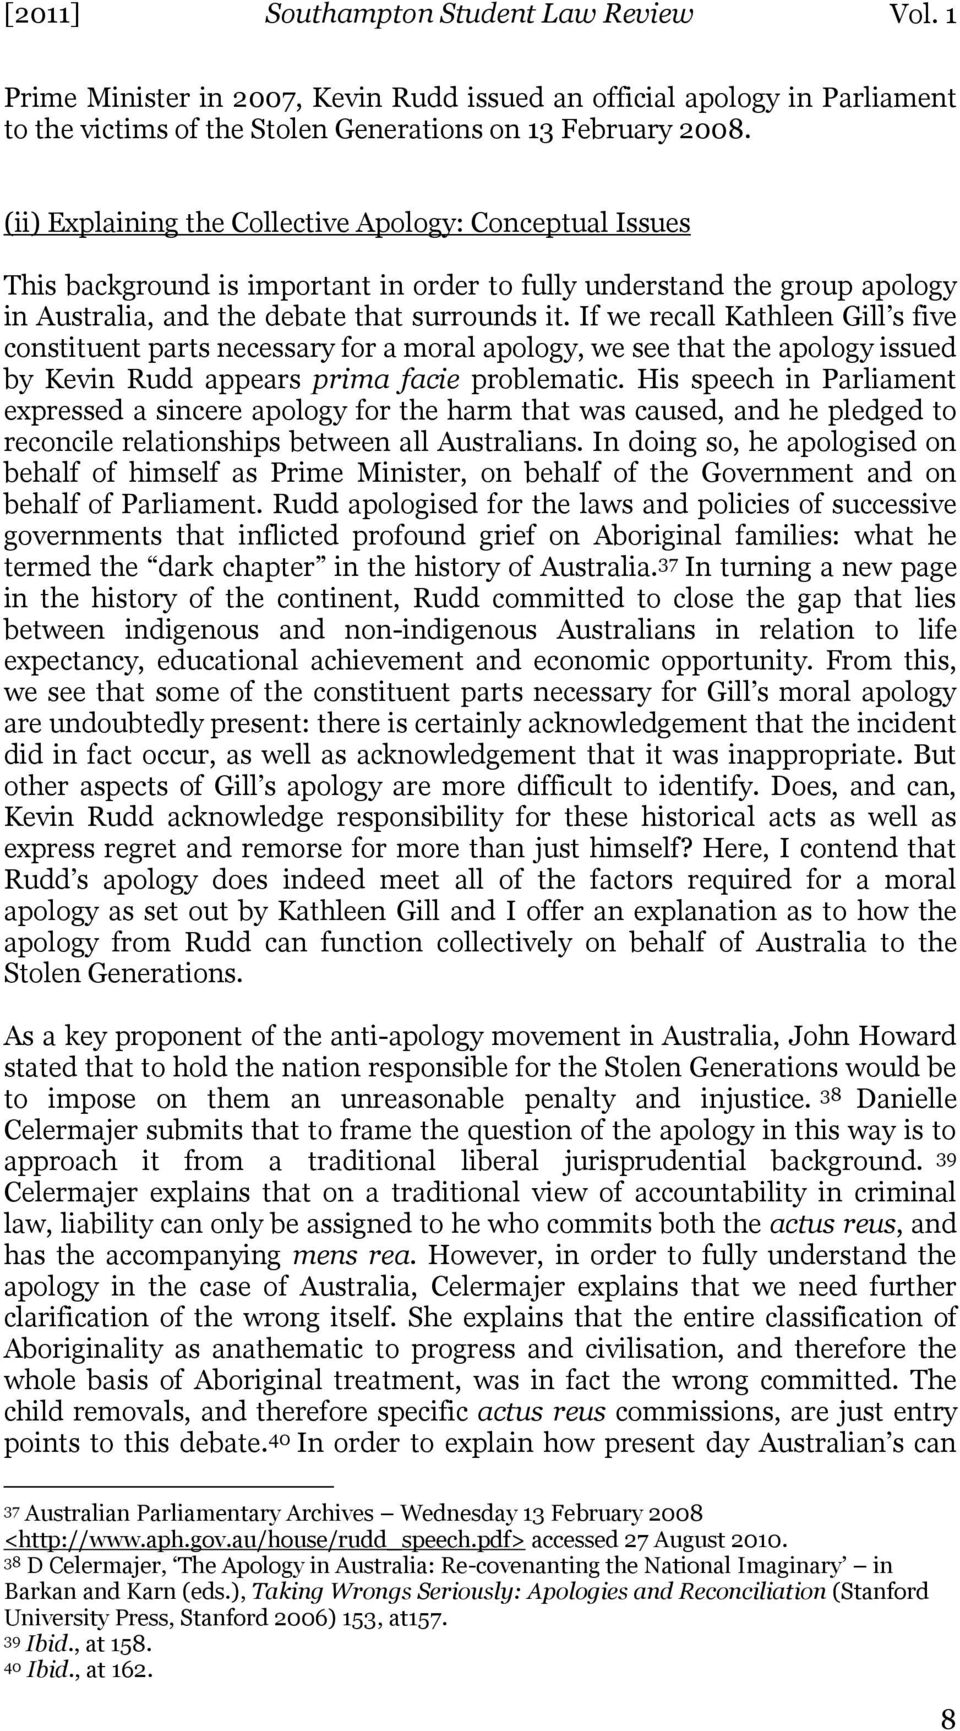 If we recall Kathleen Gill s five constituent parts necessary for a moral apology, we see that the apology issued by Kevin Rudd appears prima facie problematic.